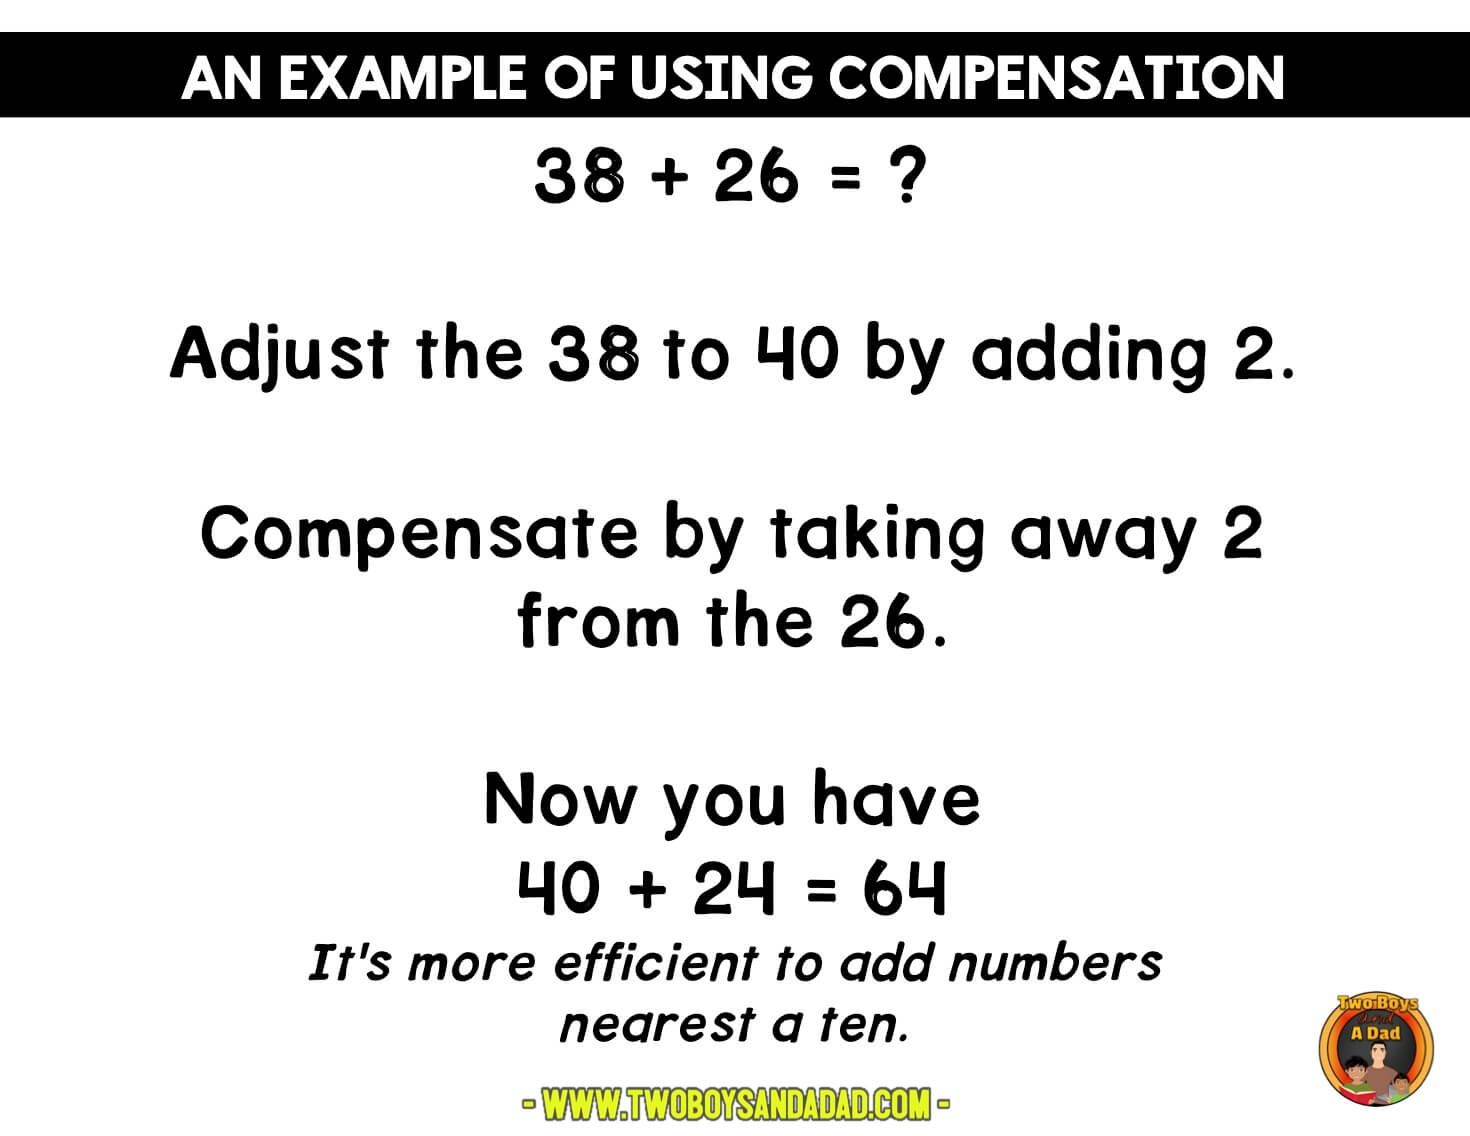 How To Use The Compensation Strategy For Addition Mental Math Strategies Math Strategies Google Classroom Math How do you do mental math addition